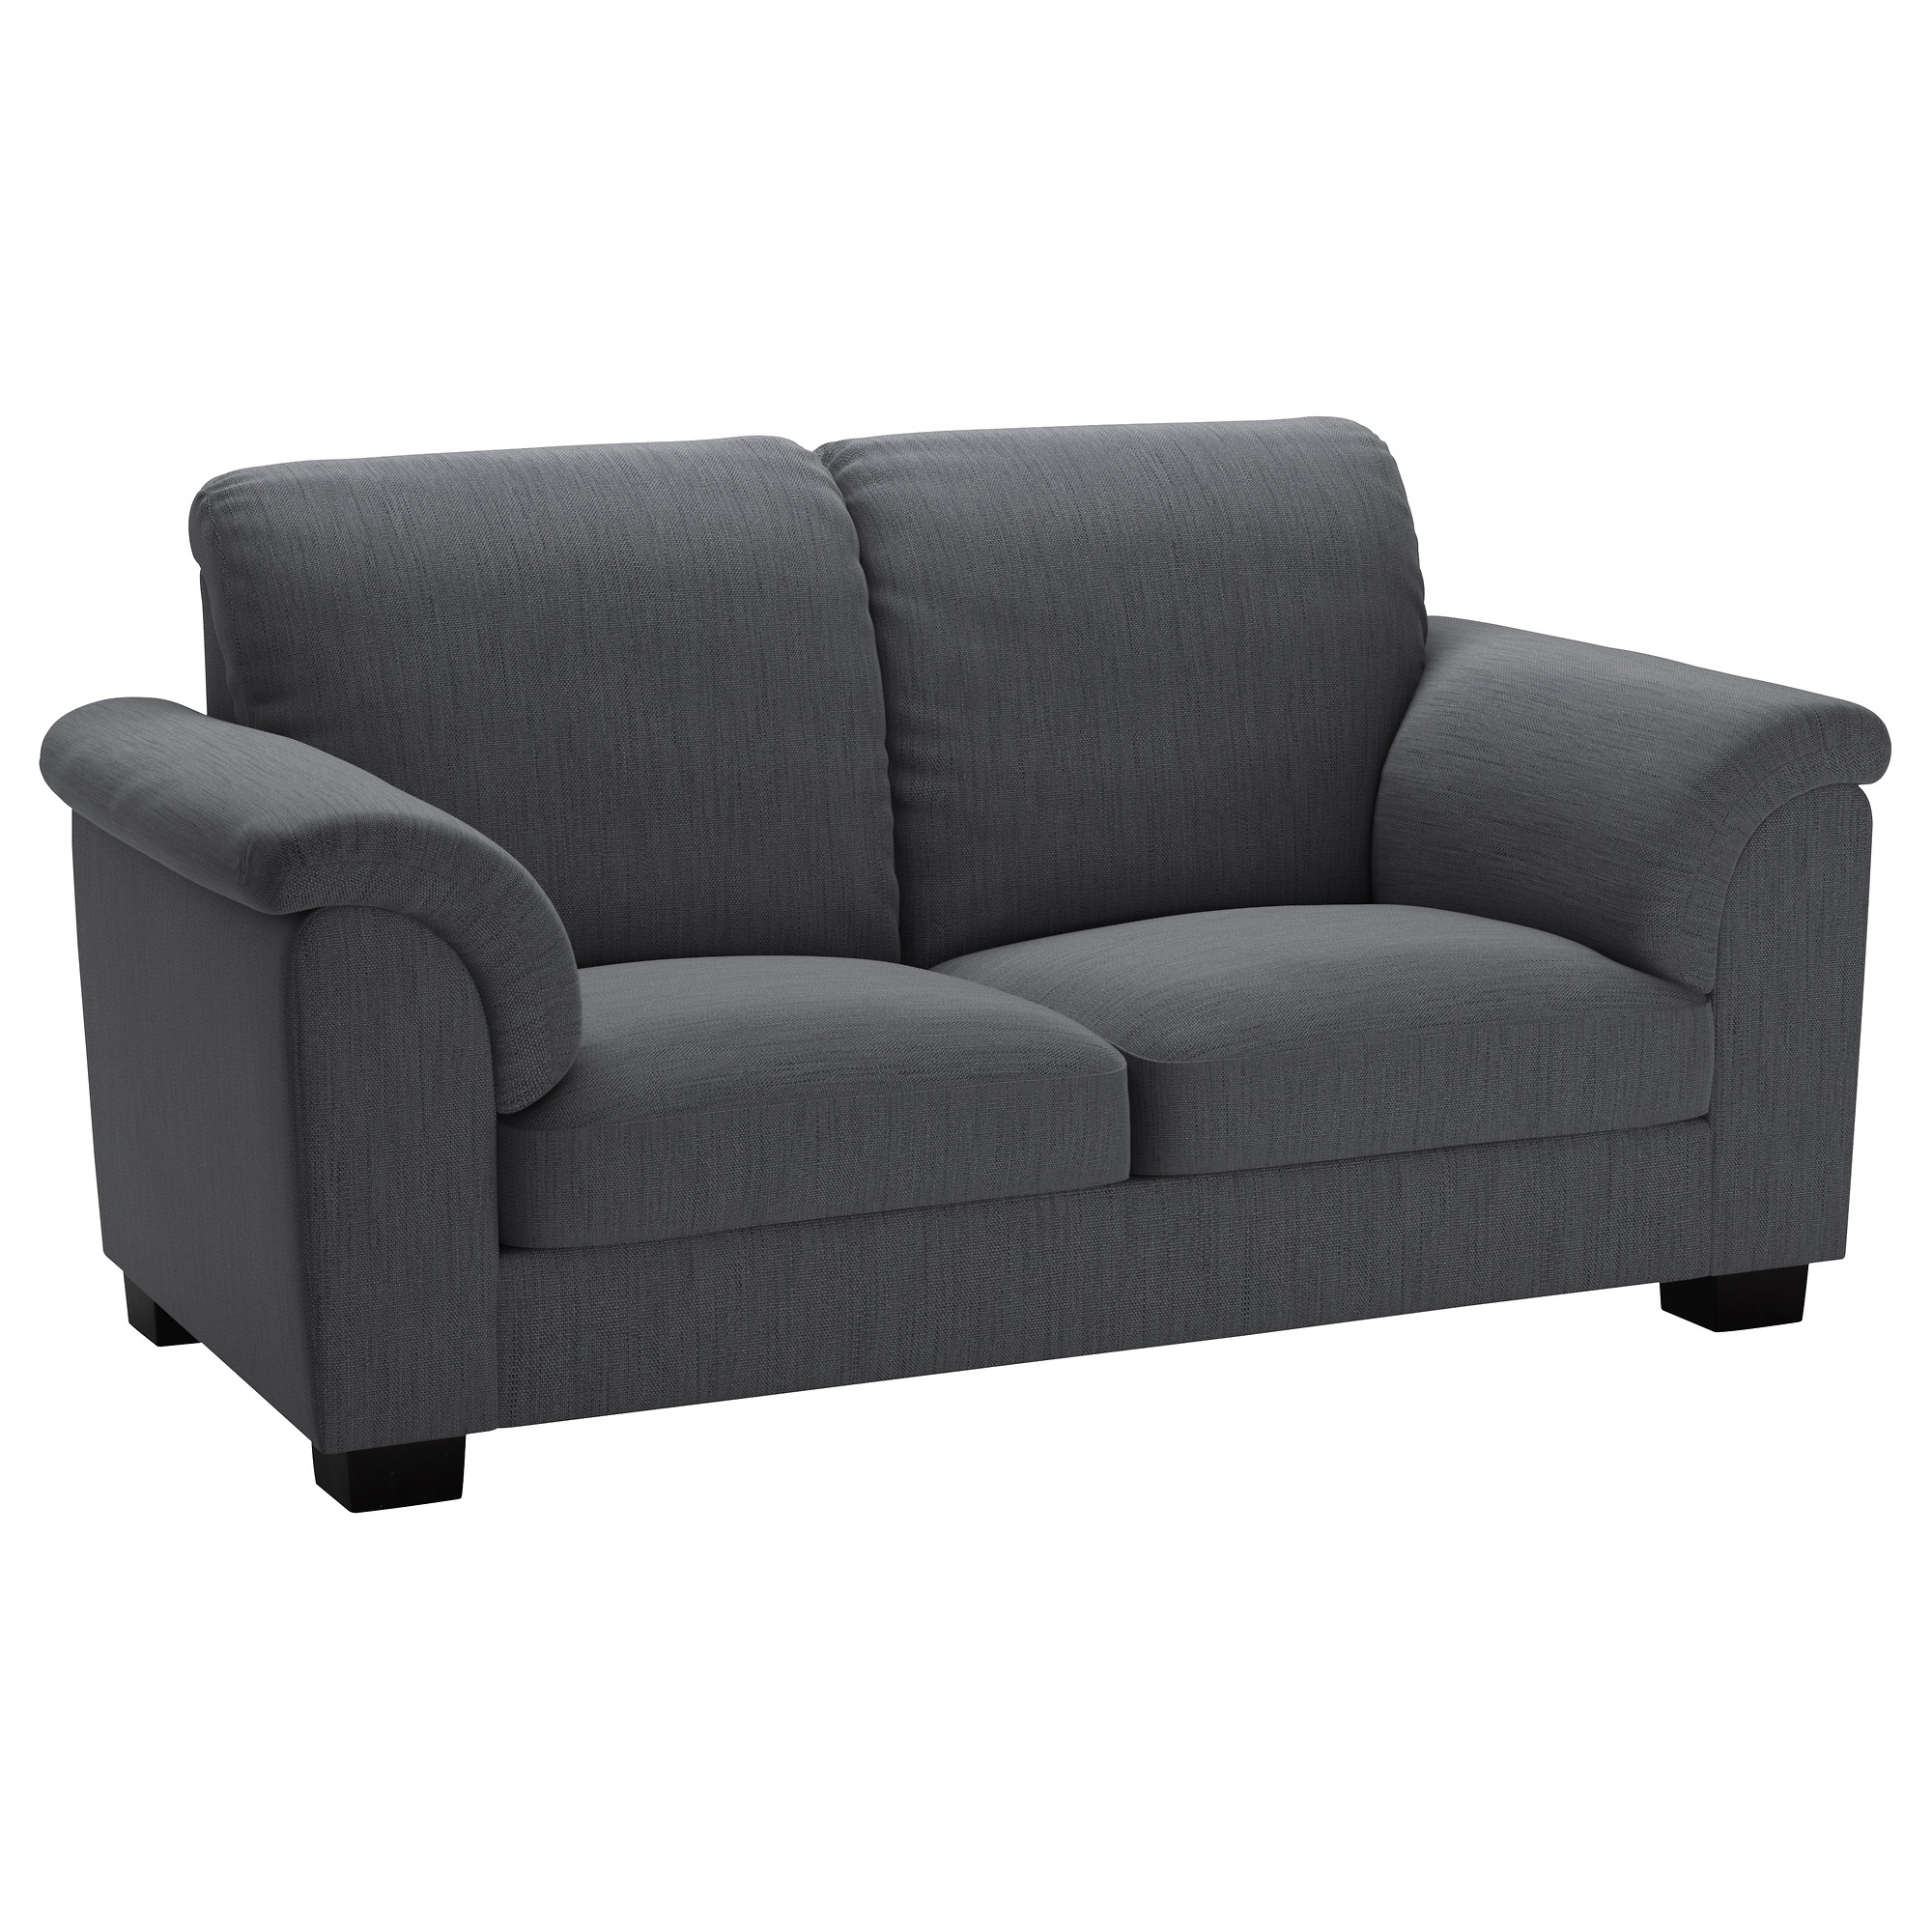 2019 Tidafors Two Seat Sofa Hensta Grey – Ikea Within Two Seater Sofas (View 2 of 20)